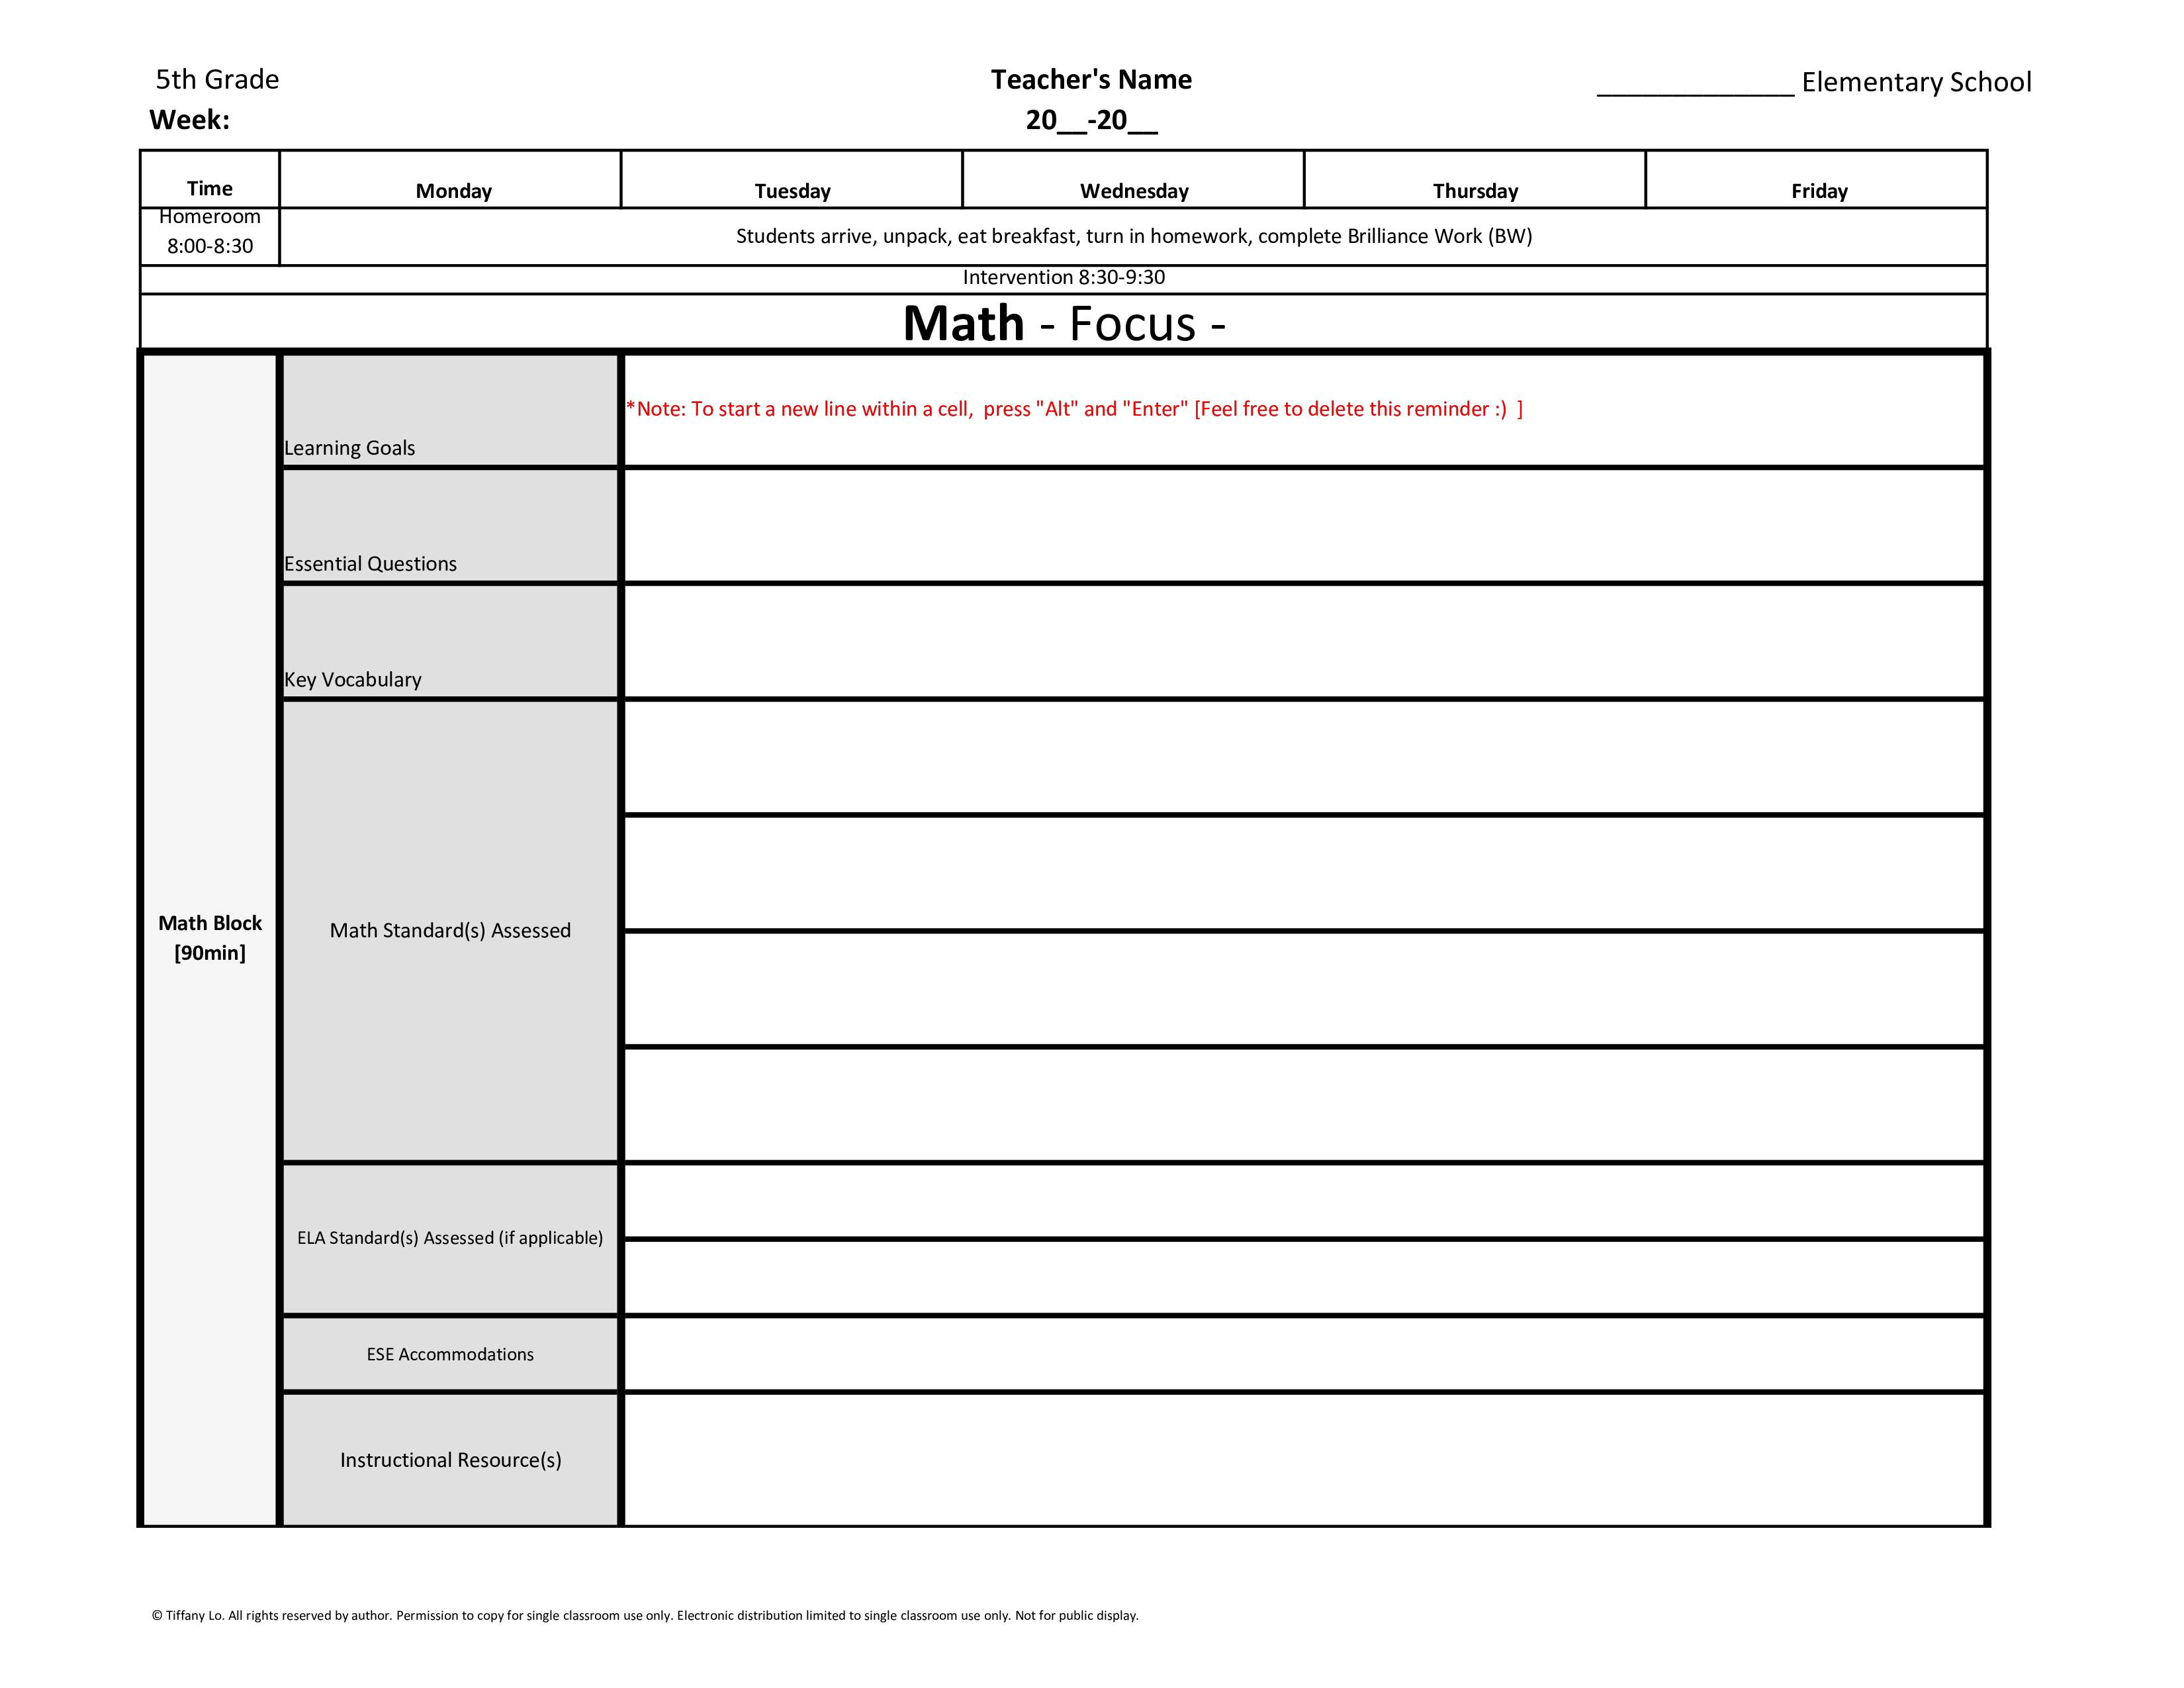 5th Fifth Grade Weekly Lesson Plan Template W Florida